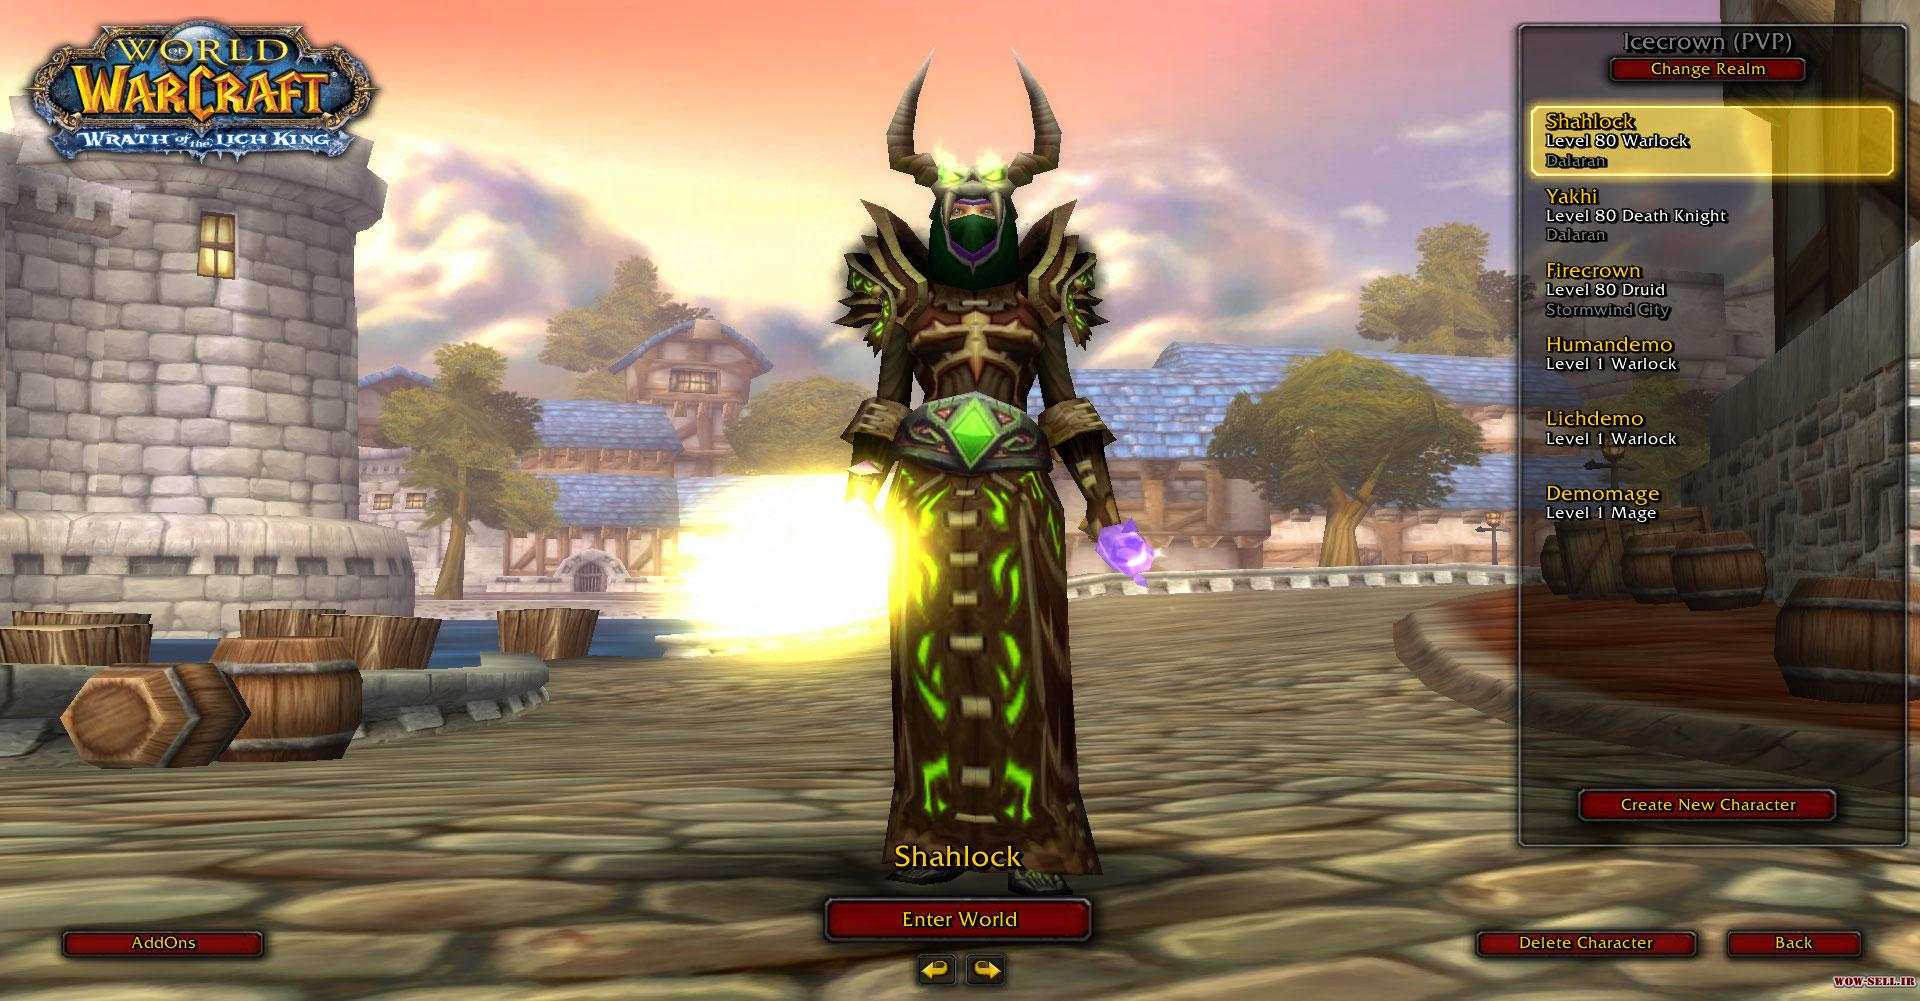 فروش اکانت wow - کد 1109 - کلاس warlock + death knight + druid - سرور warmane.com